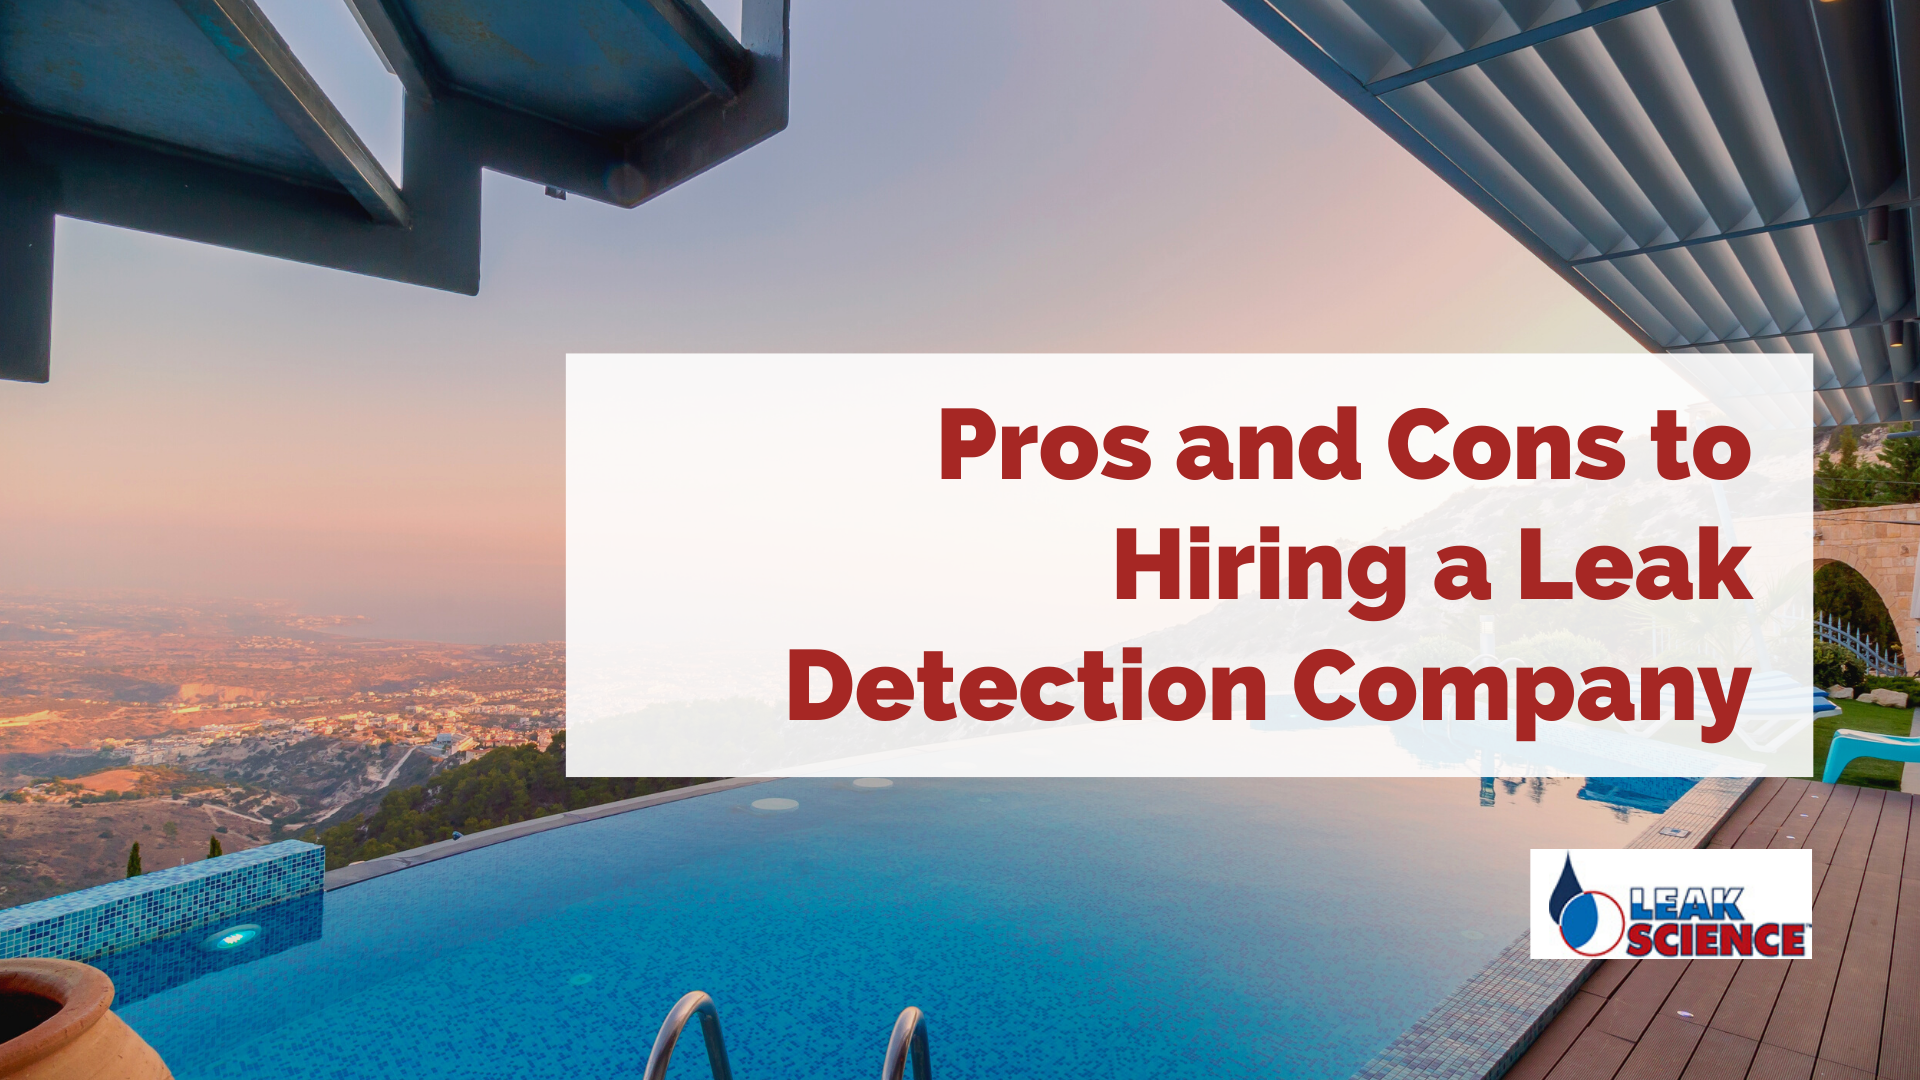 Pros and Cons to Hiring a Leak Detection Company